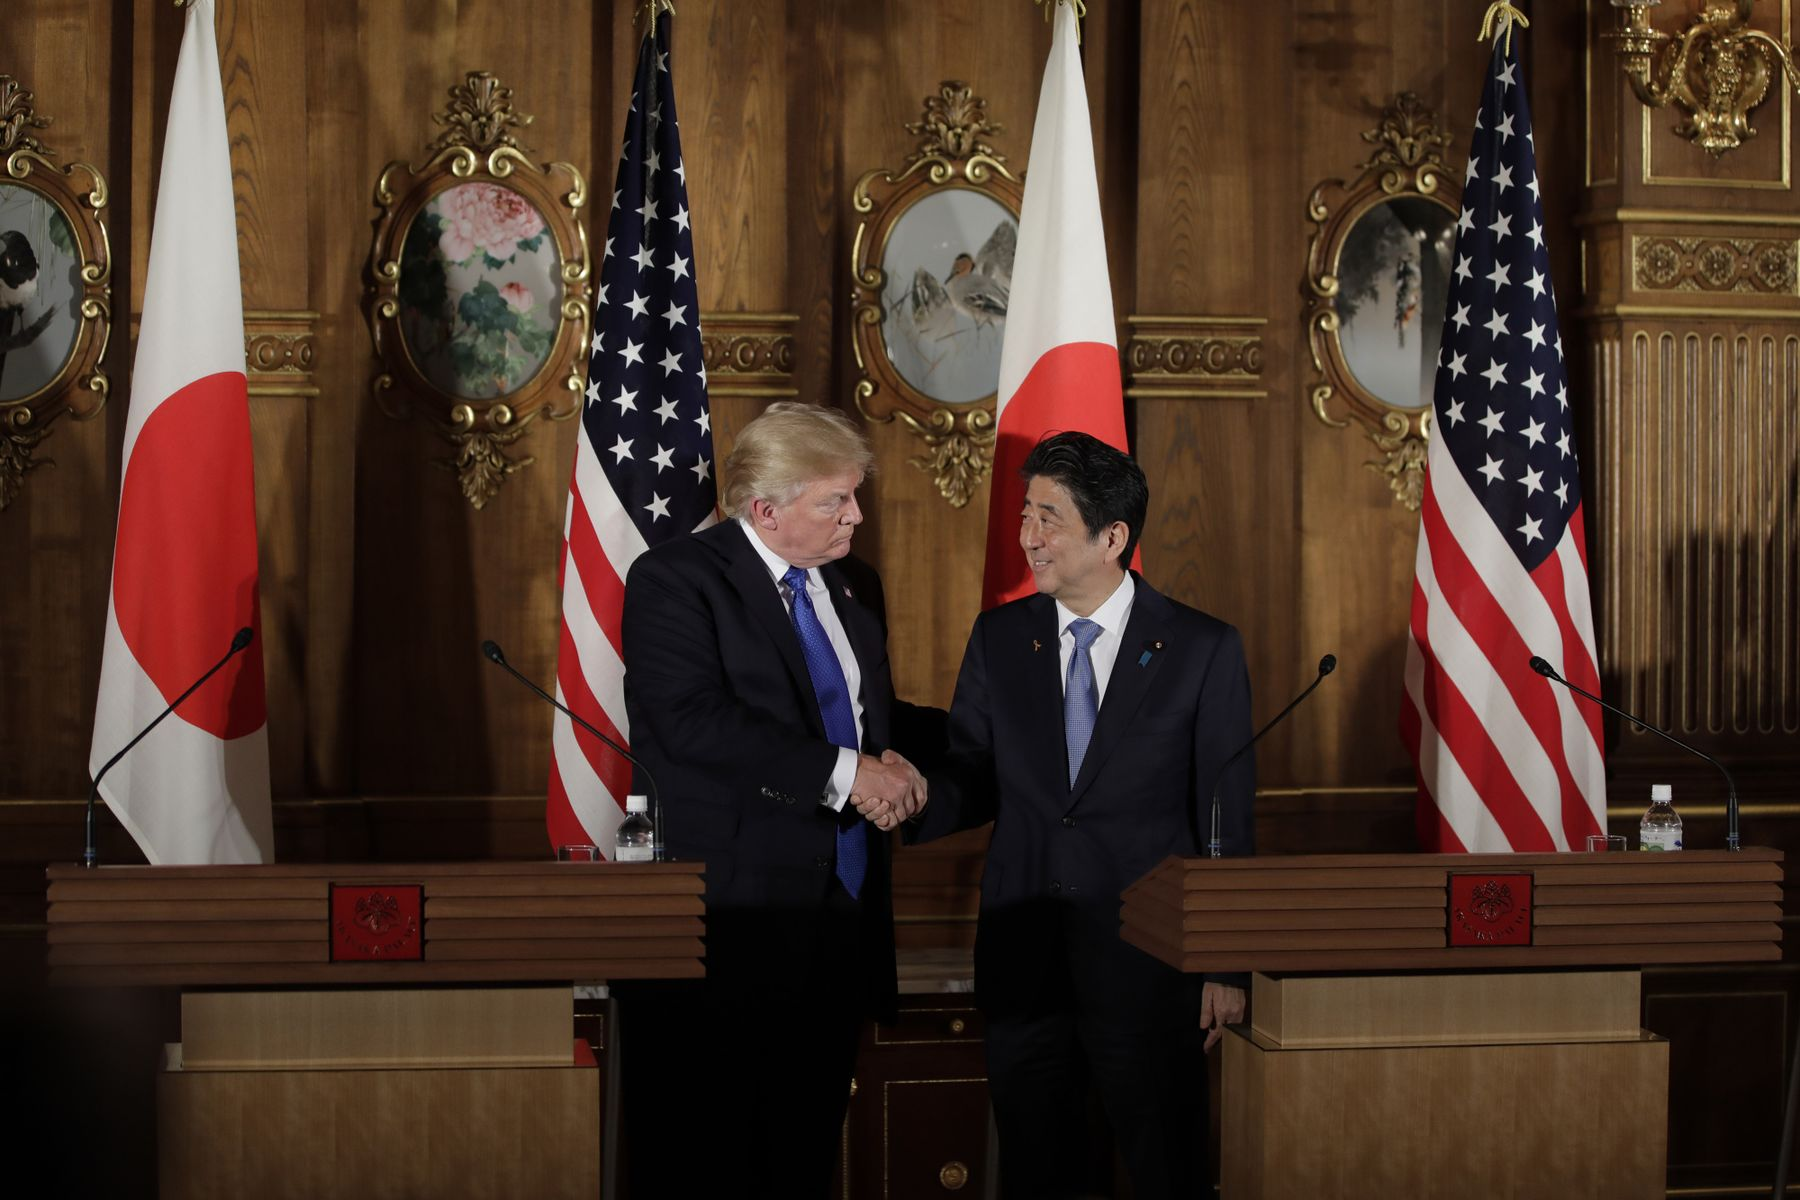 Trump tells Japan it's time to reduce U.S. trade deficit